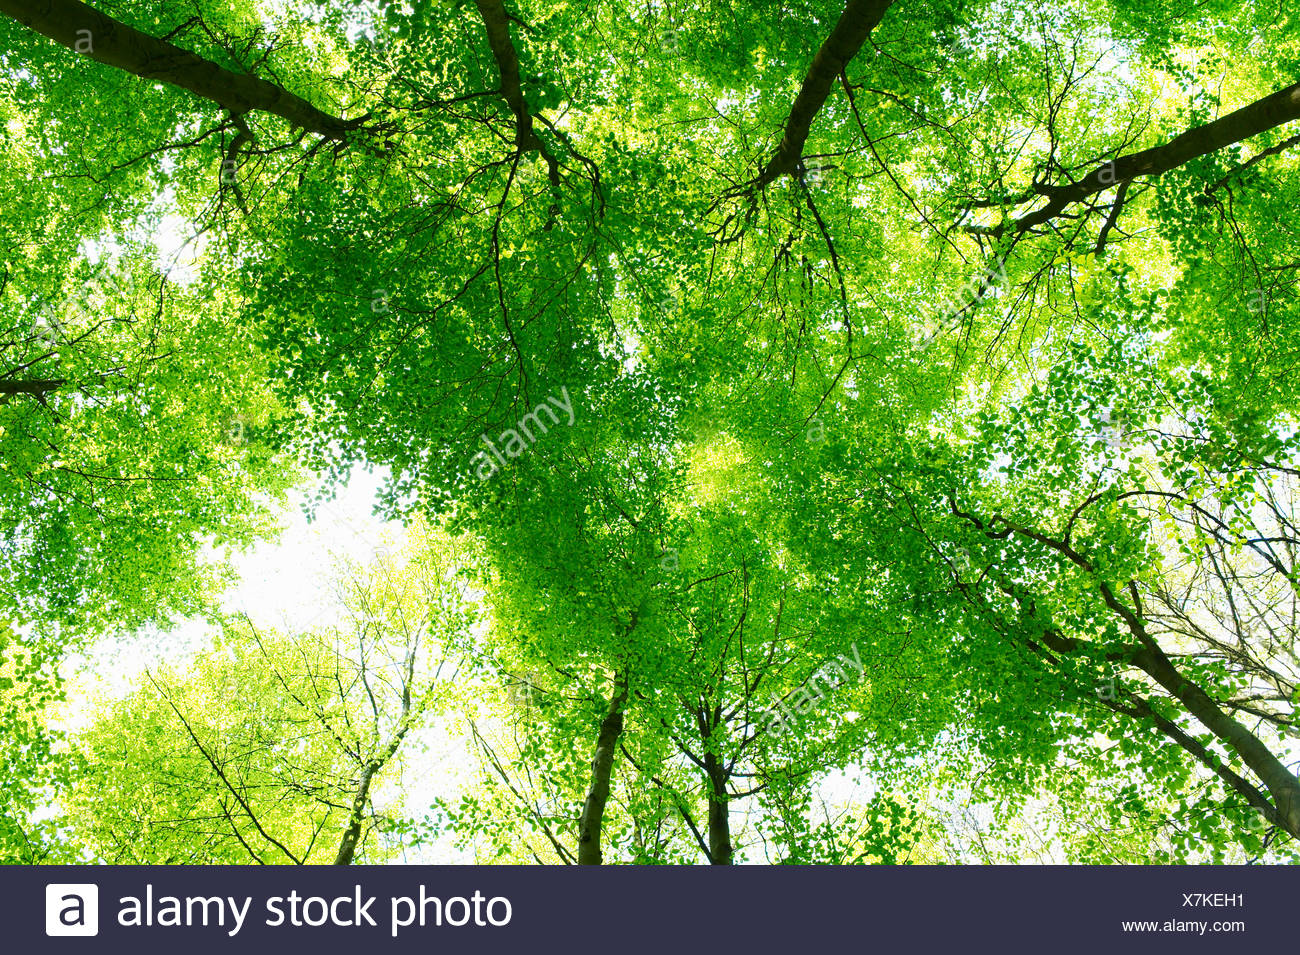 Trees, shot from below - Stock Image